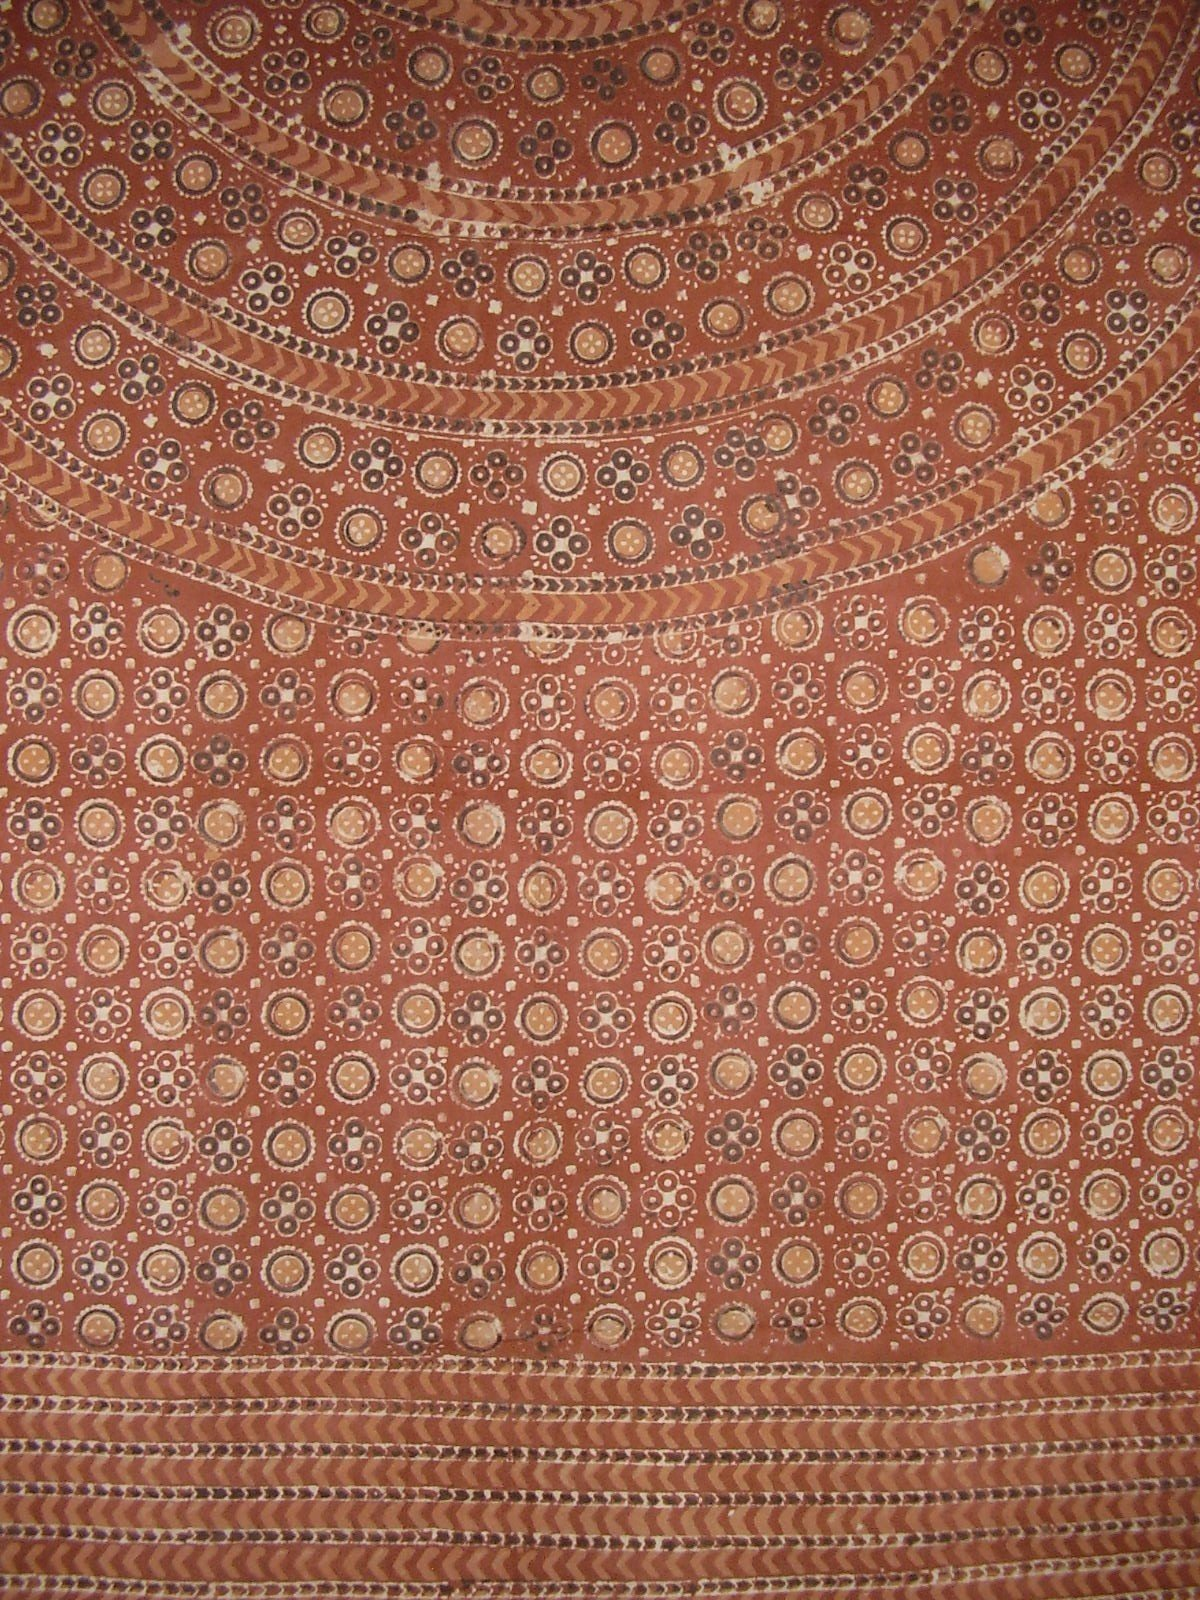 Block Print Mandala Tapestry Cotton Bedspread 108'' x 88'' Full-Queen Brown